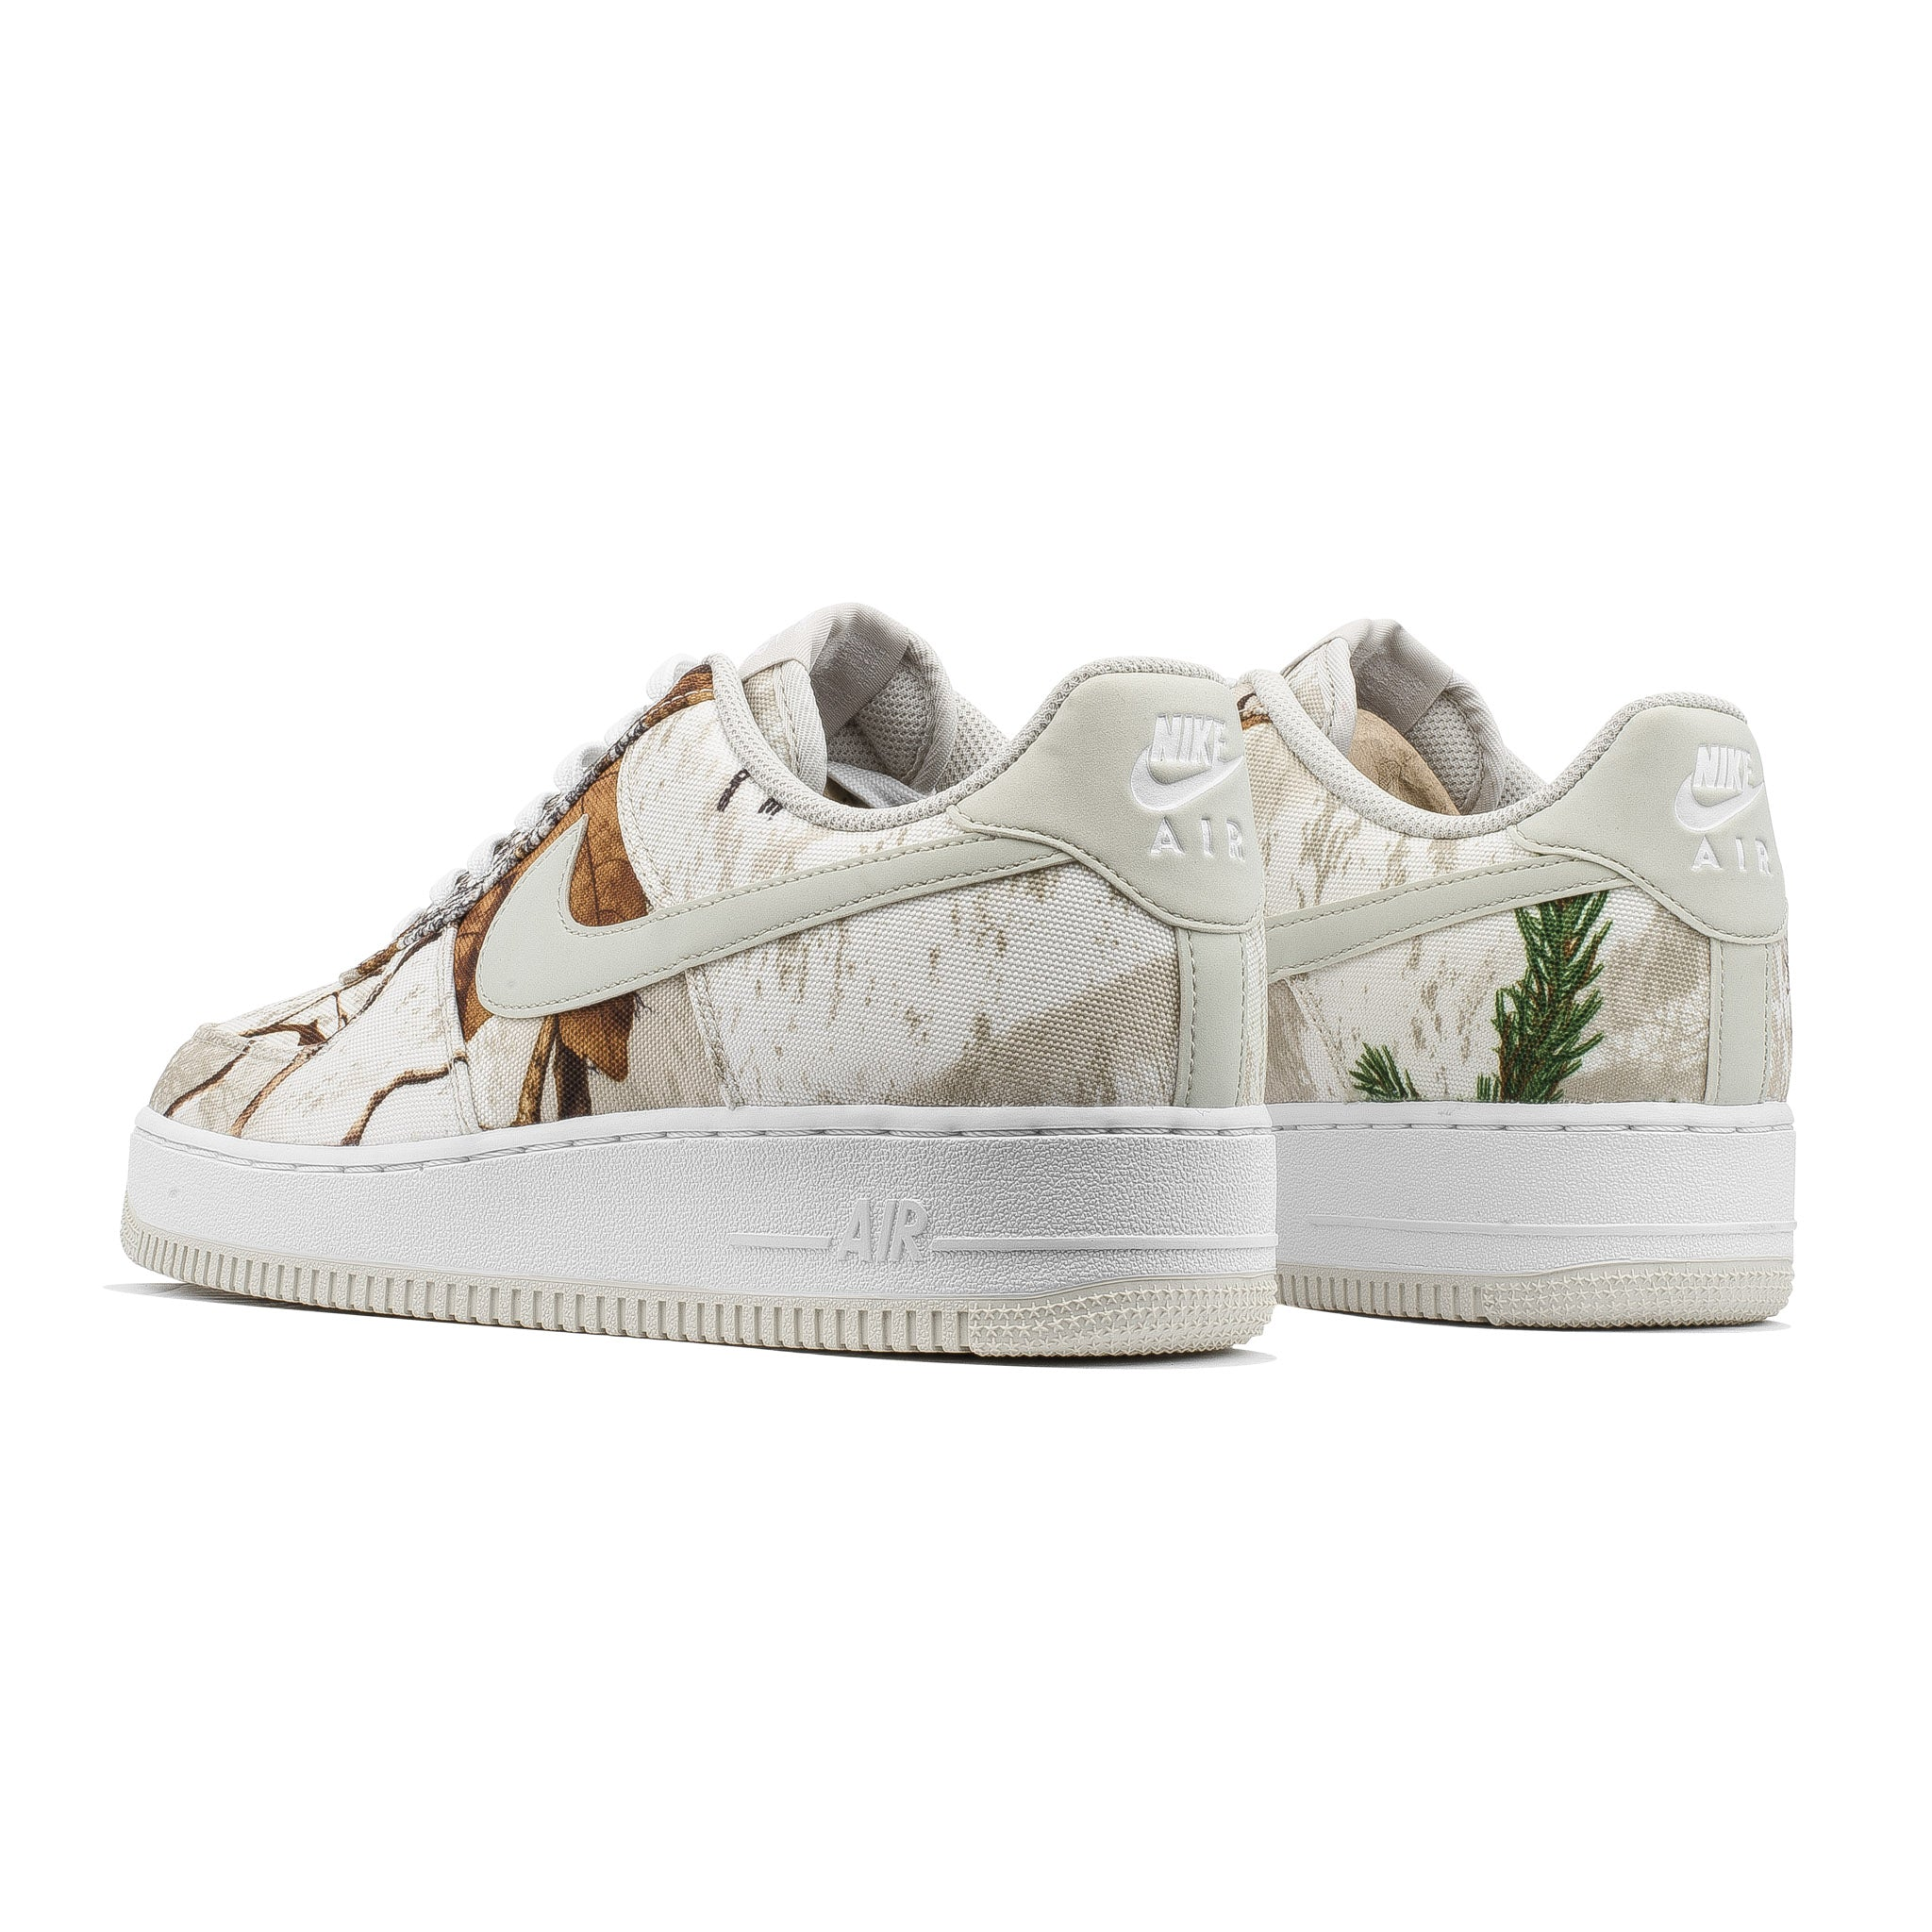 Air Force 1 '07 LV8 3 AO2441-100 White